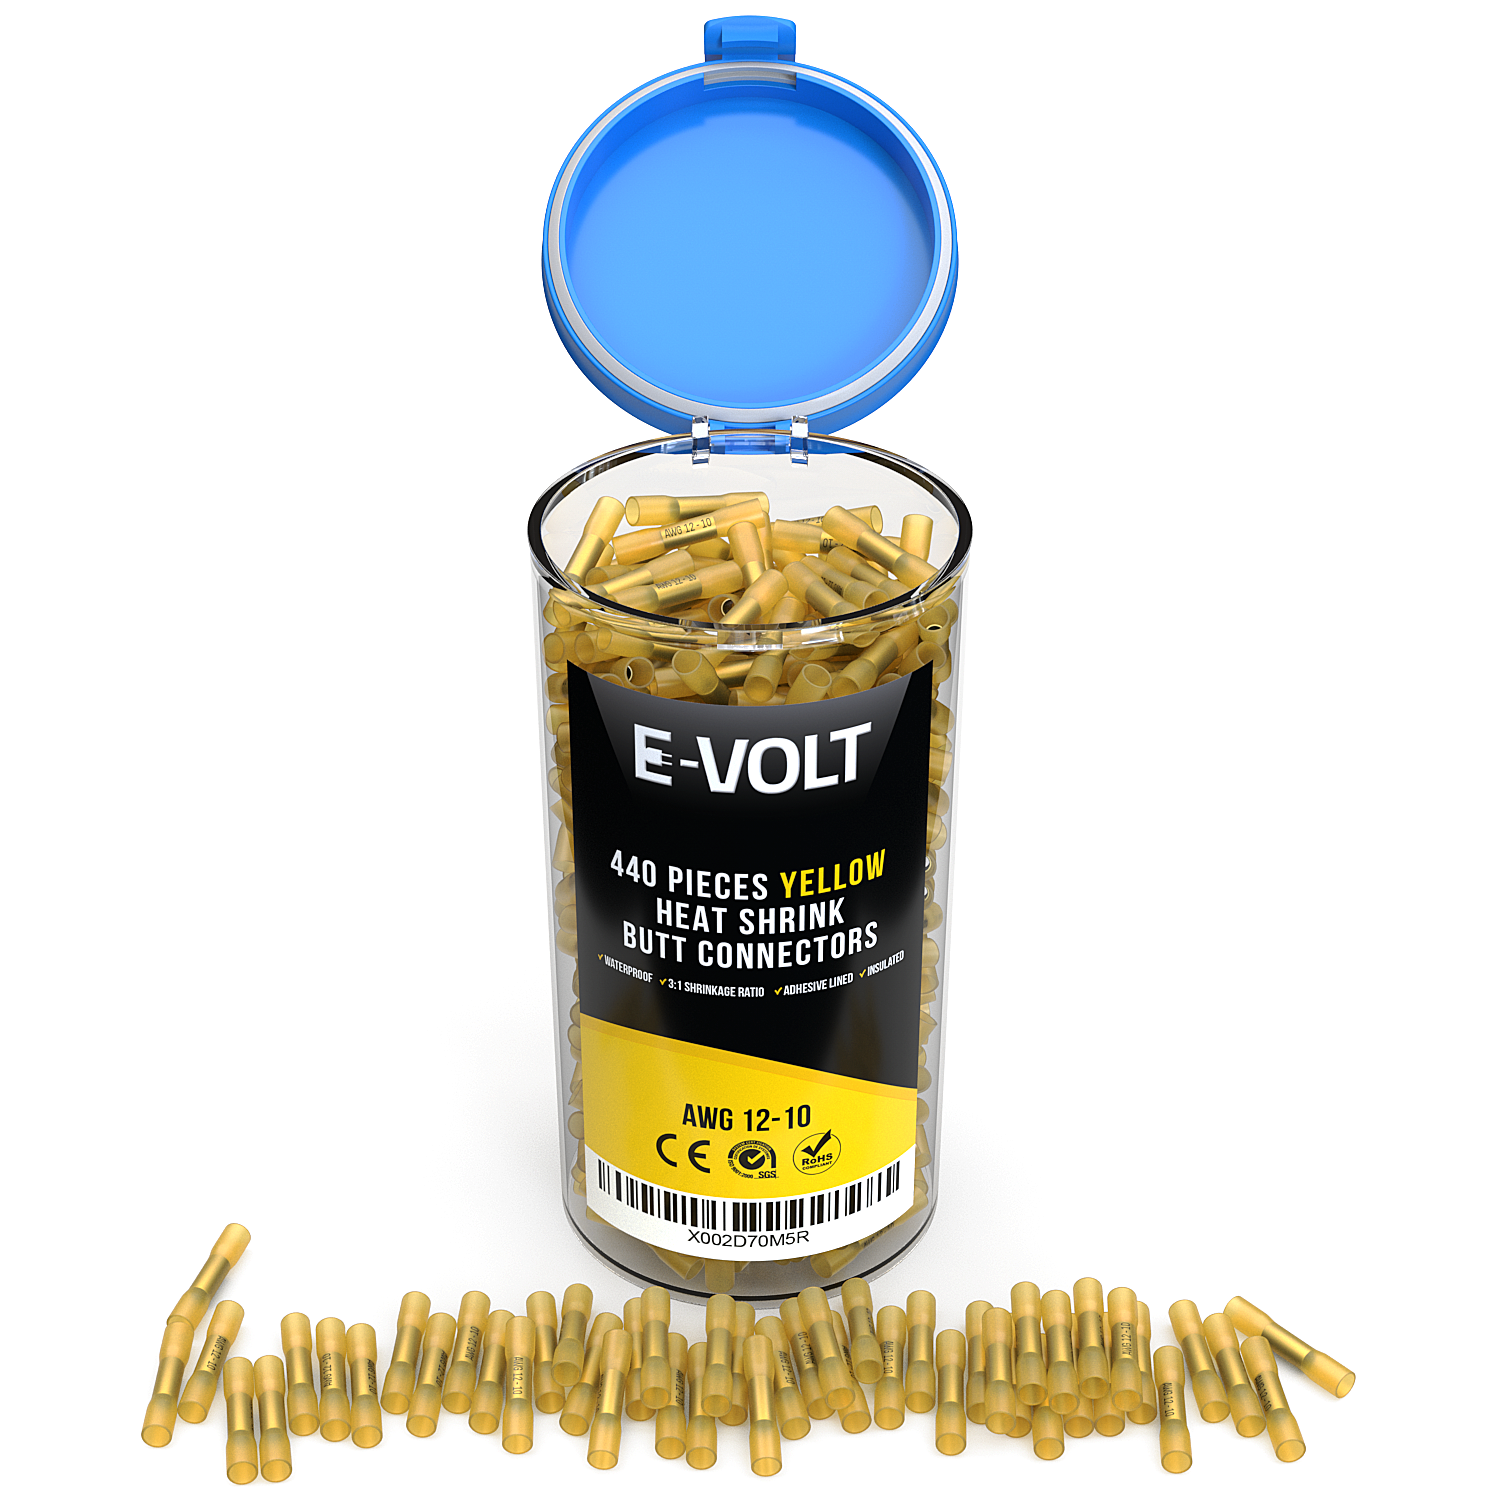 440 PC 12-10 Gauge Yellow Heat Shrink Butt Crimp Connectors